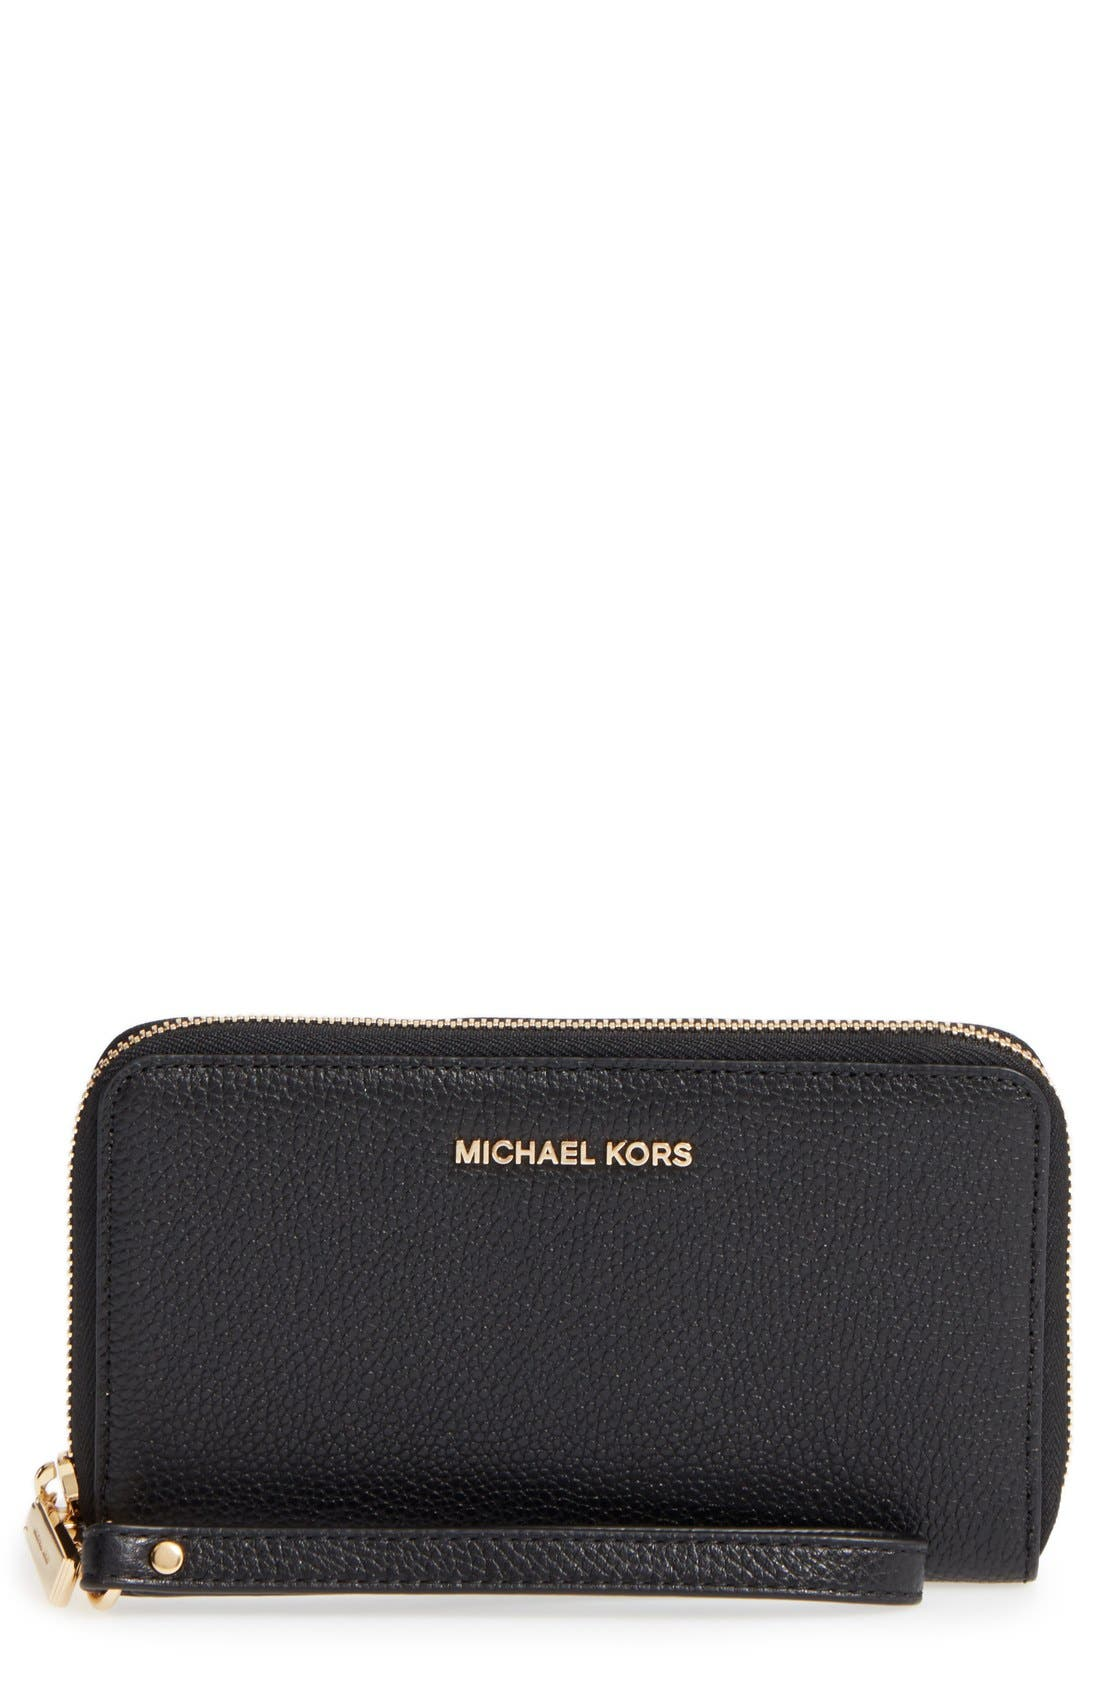 f405f3872b5b52 Buy michael kors grey wristlet > OFF64% Discounted